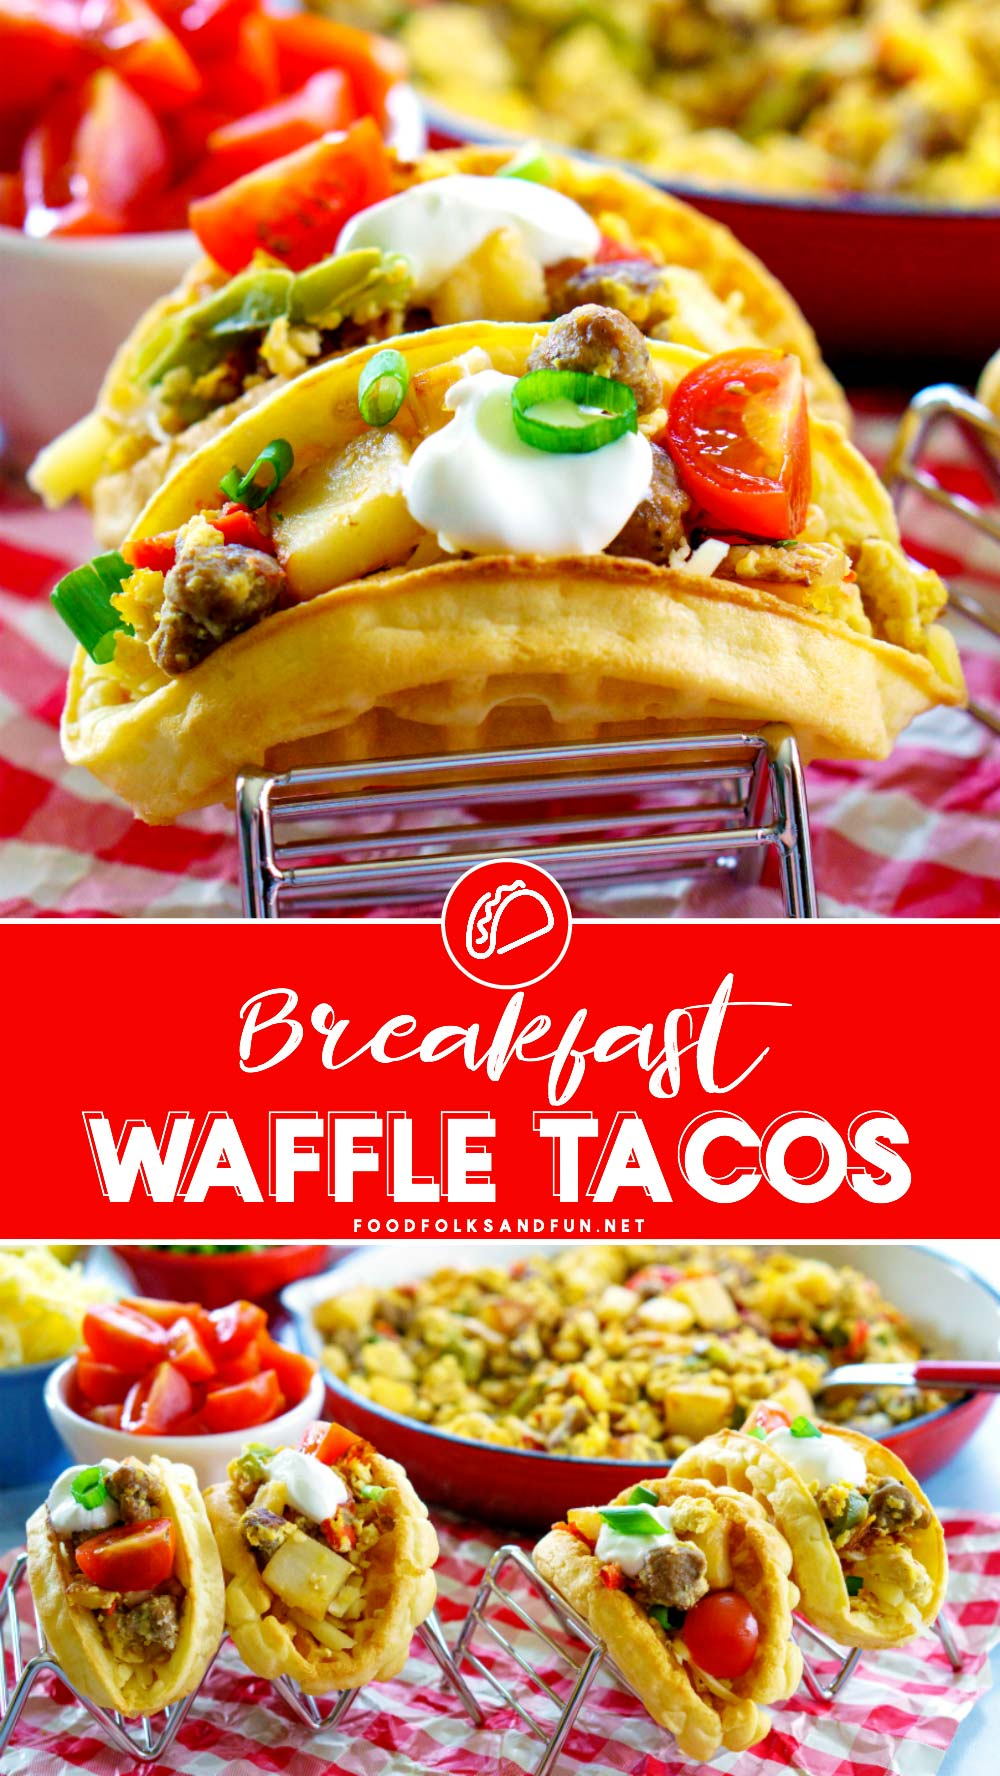 These Breakfast Waffle Tacos are just the easy weeknight brinner or breakfast recipe that you need for back-to-school! The breakfast tacos are loaded with sausage, potatoes, red and green peppers, and onions! #breakfast #brunch #brinner #tacos #waffles #breakfasstrecipe #easyrecipe #brinnerrecipe #foodfolksandfun via @foodfolksandfun